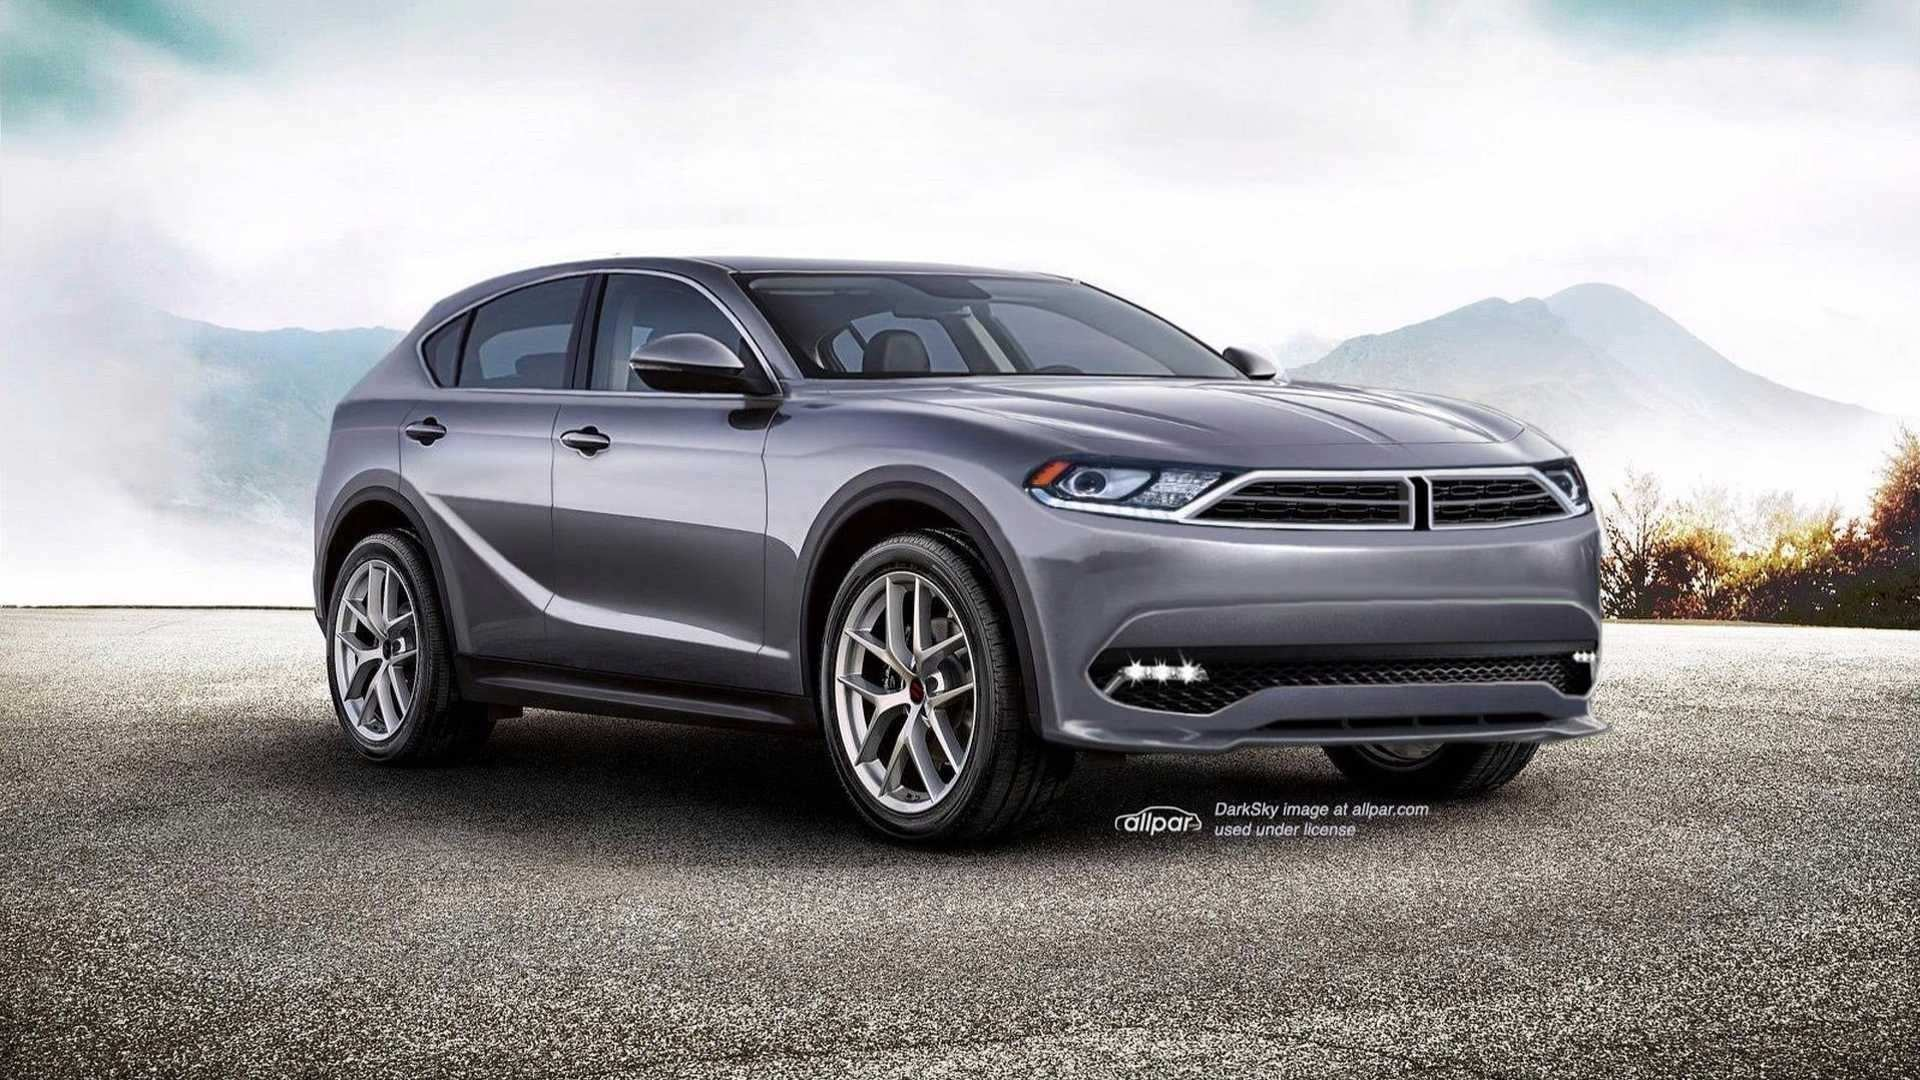 20 All New New Dodge New 2019 Release Date Price And Review New Review by New Dodge New 2019 Release Date Price And Review